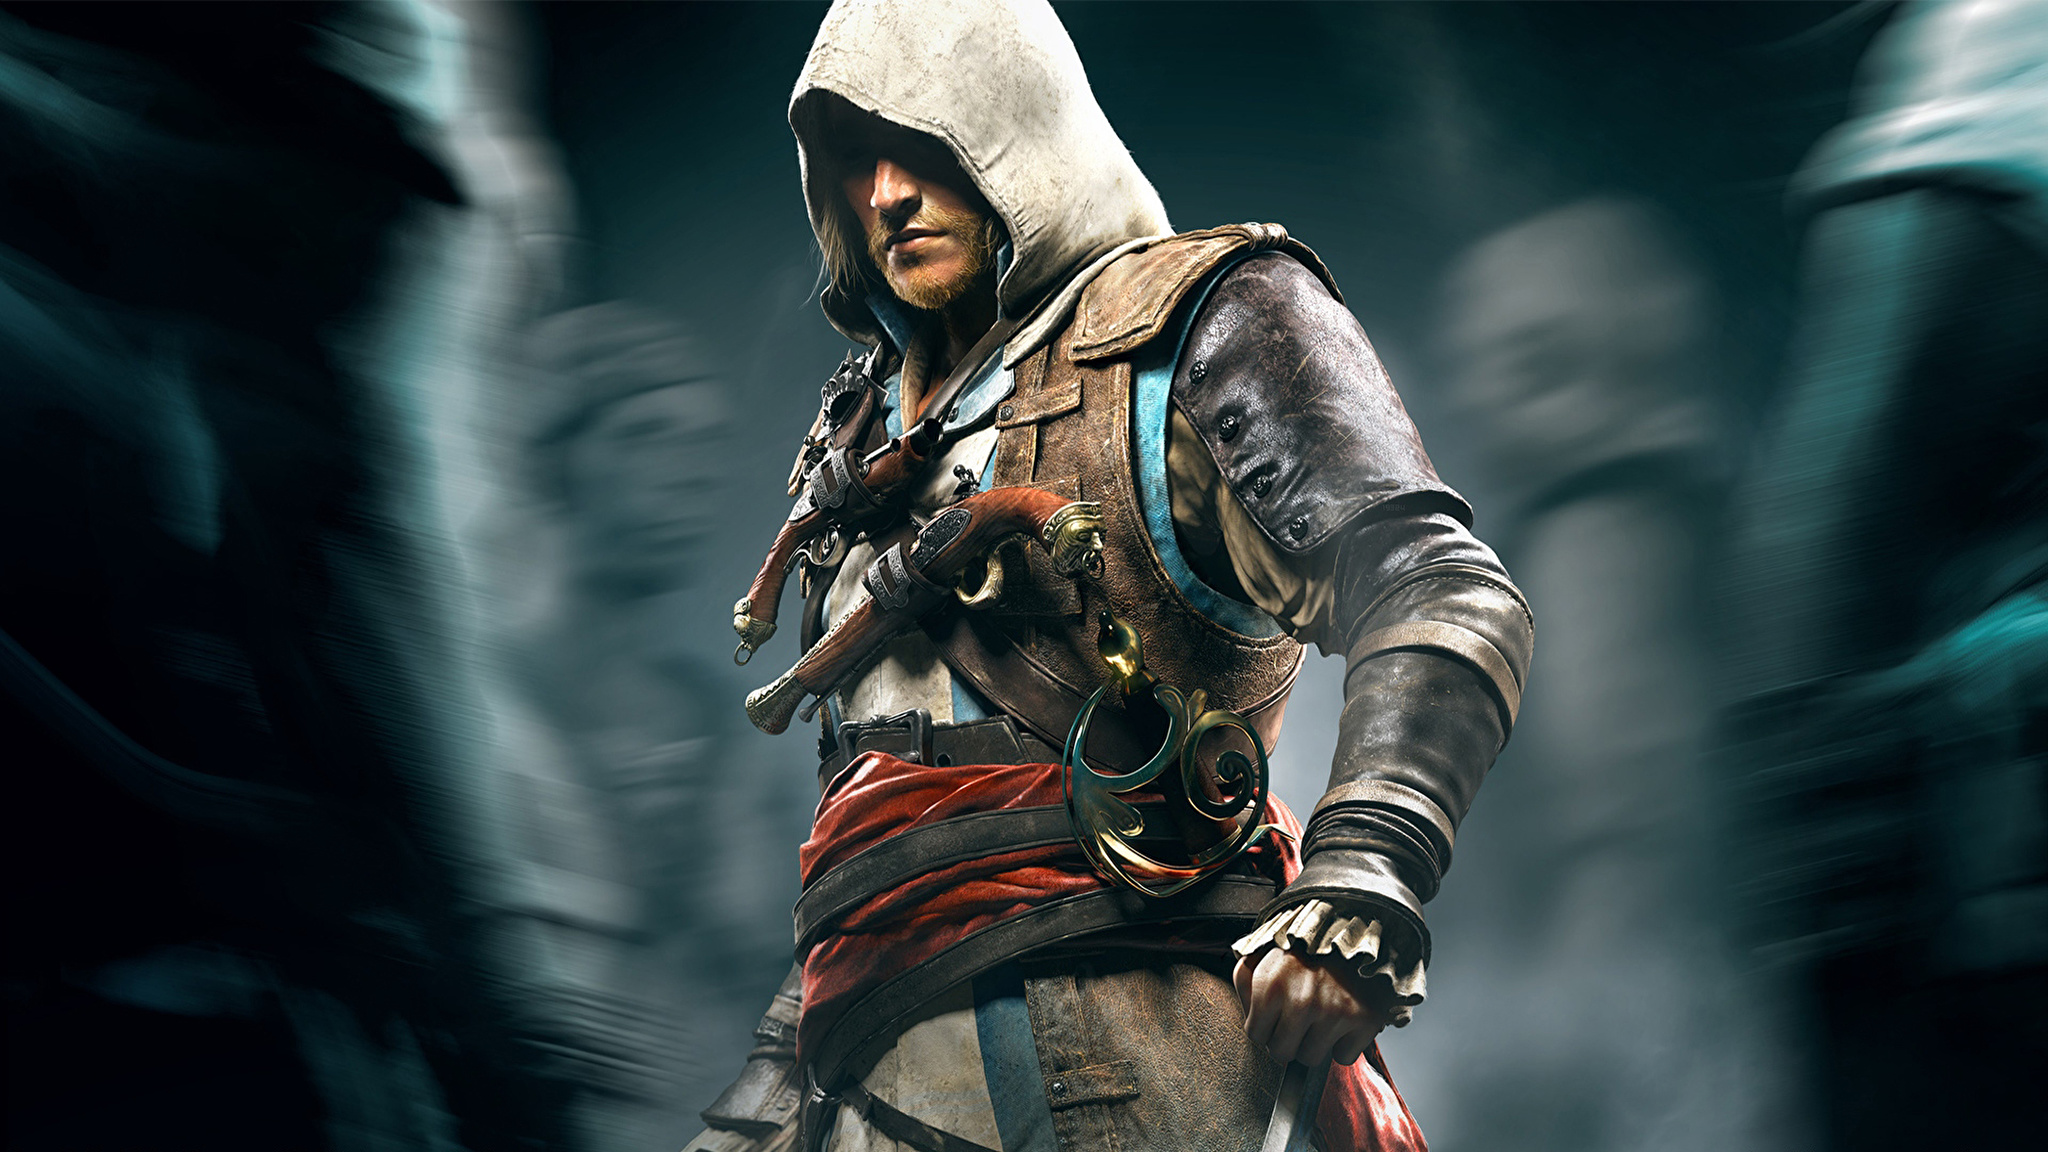 assassins creed iv black flag pc game free download - HD 2048×1152